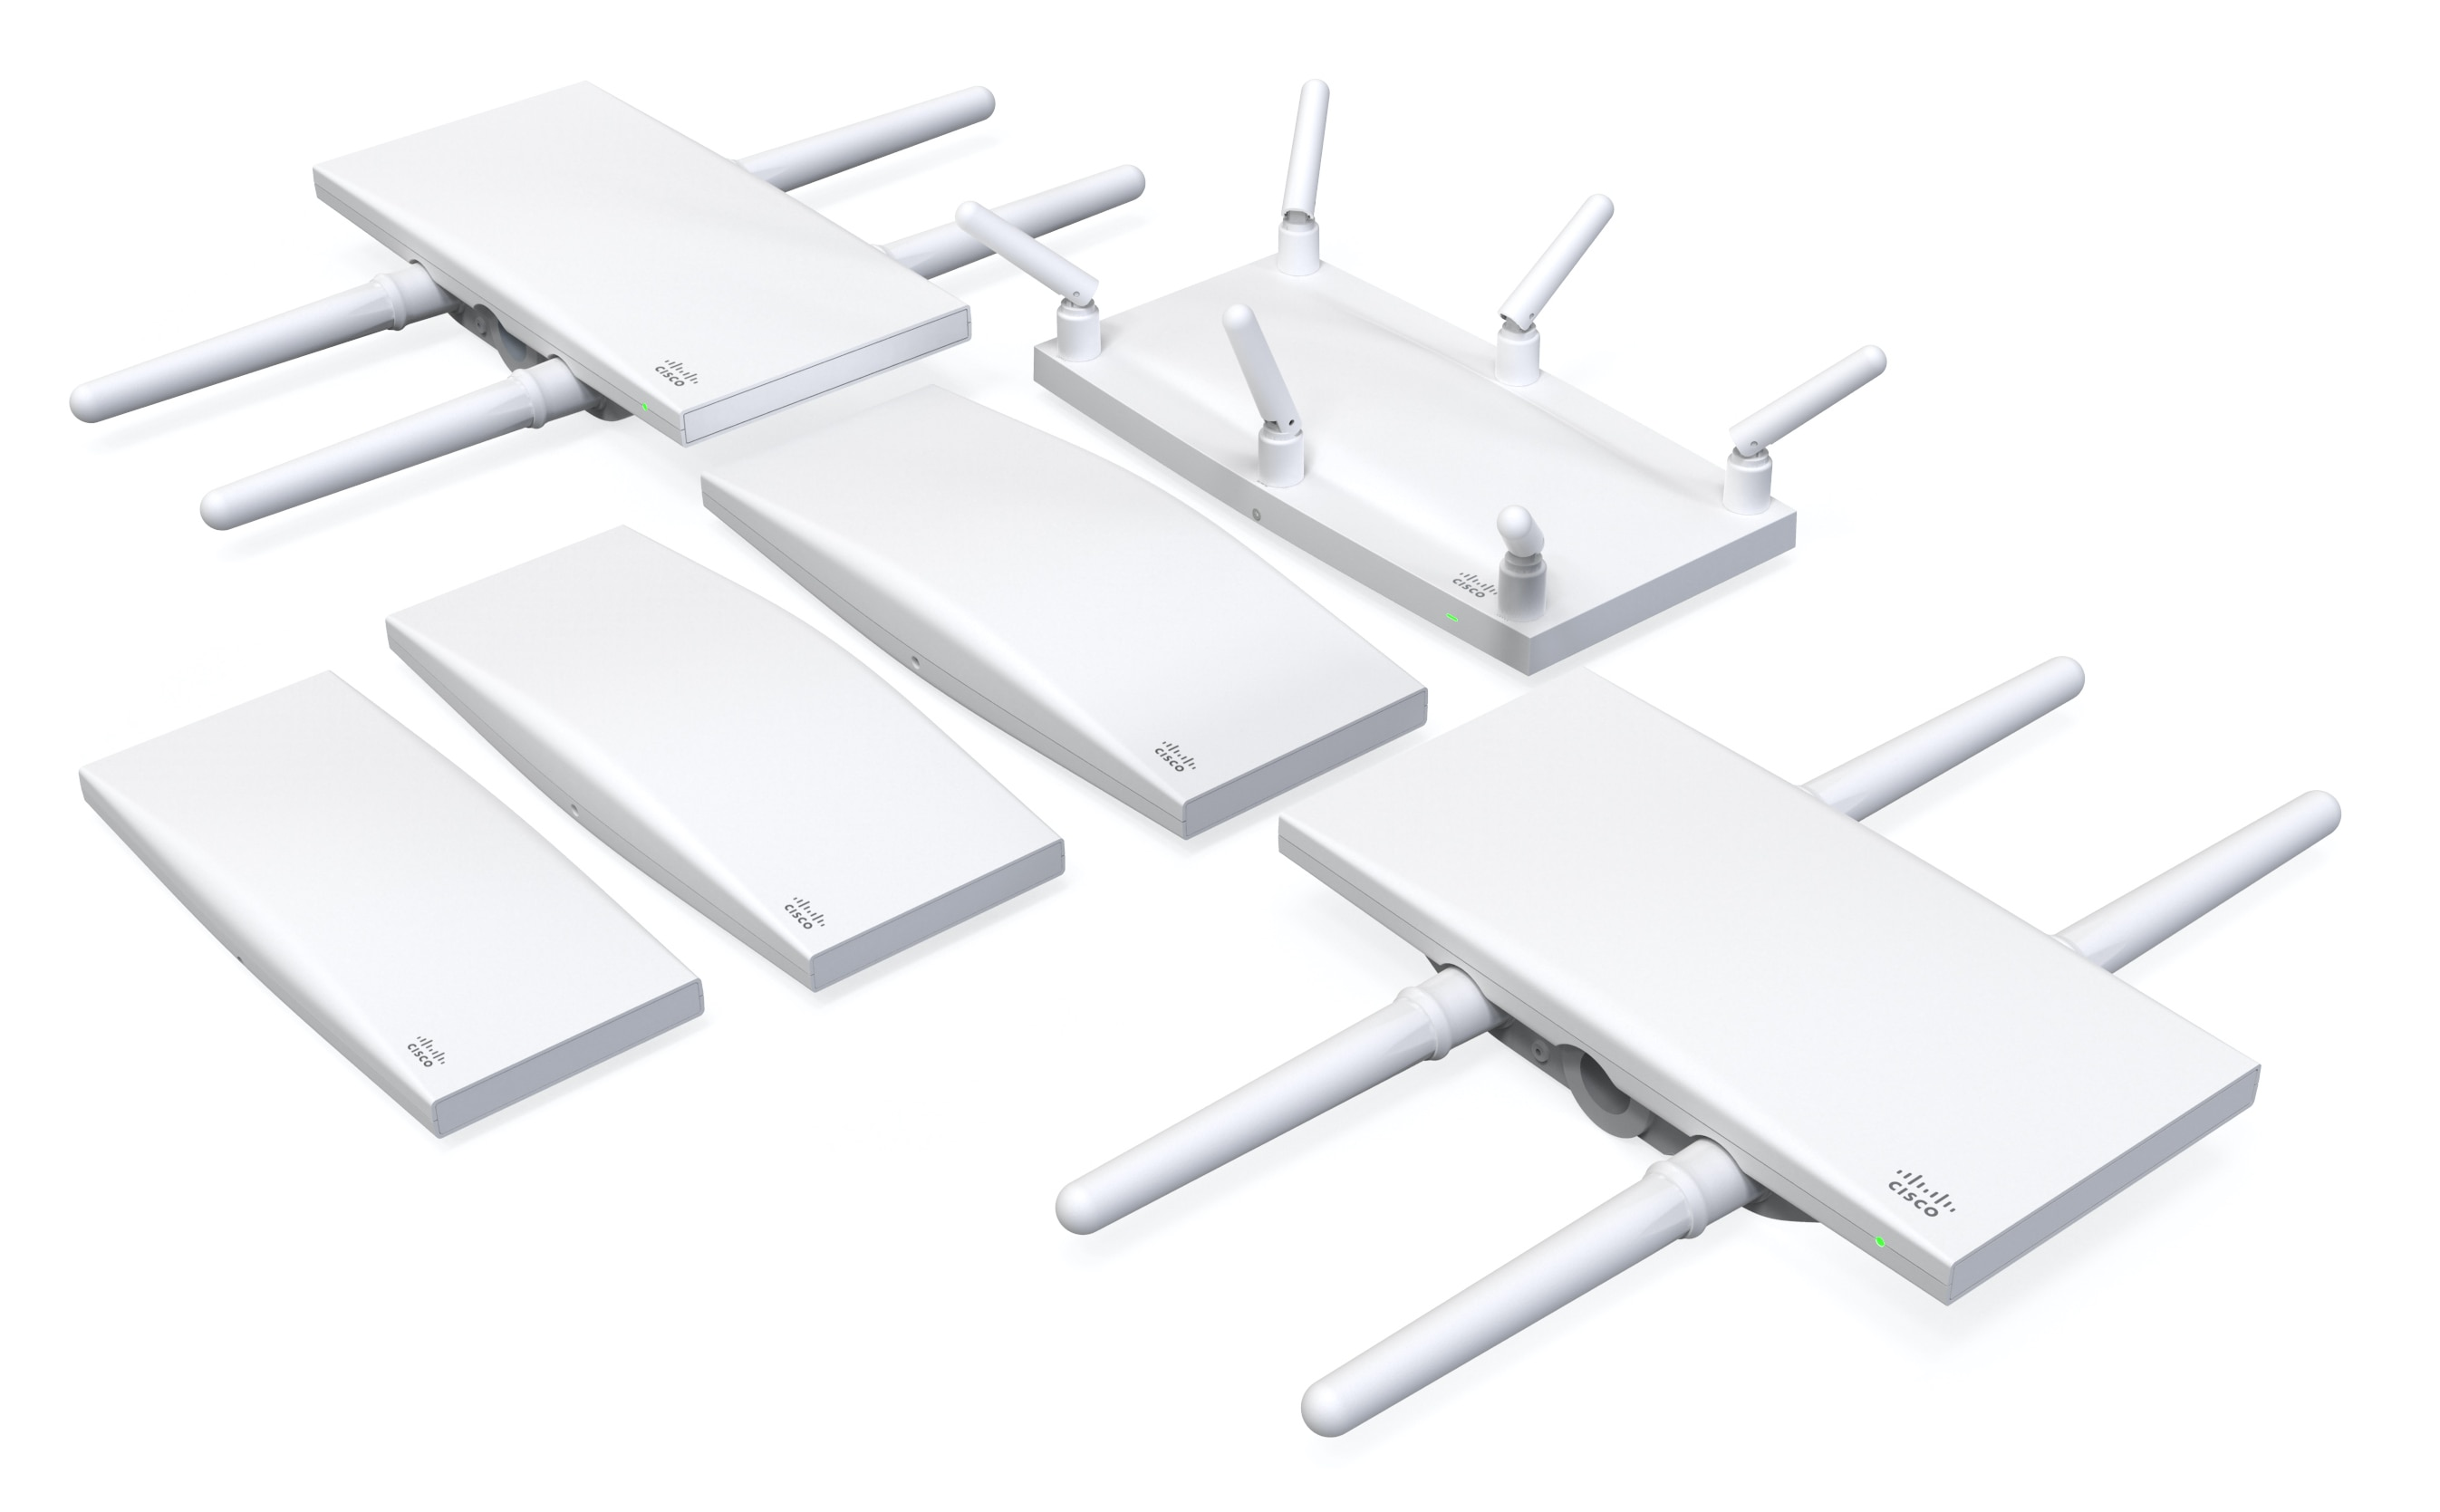 Collection of meraki products